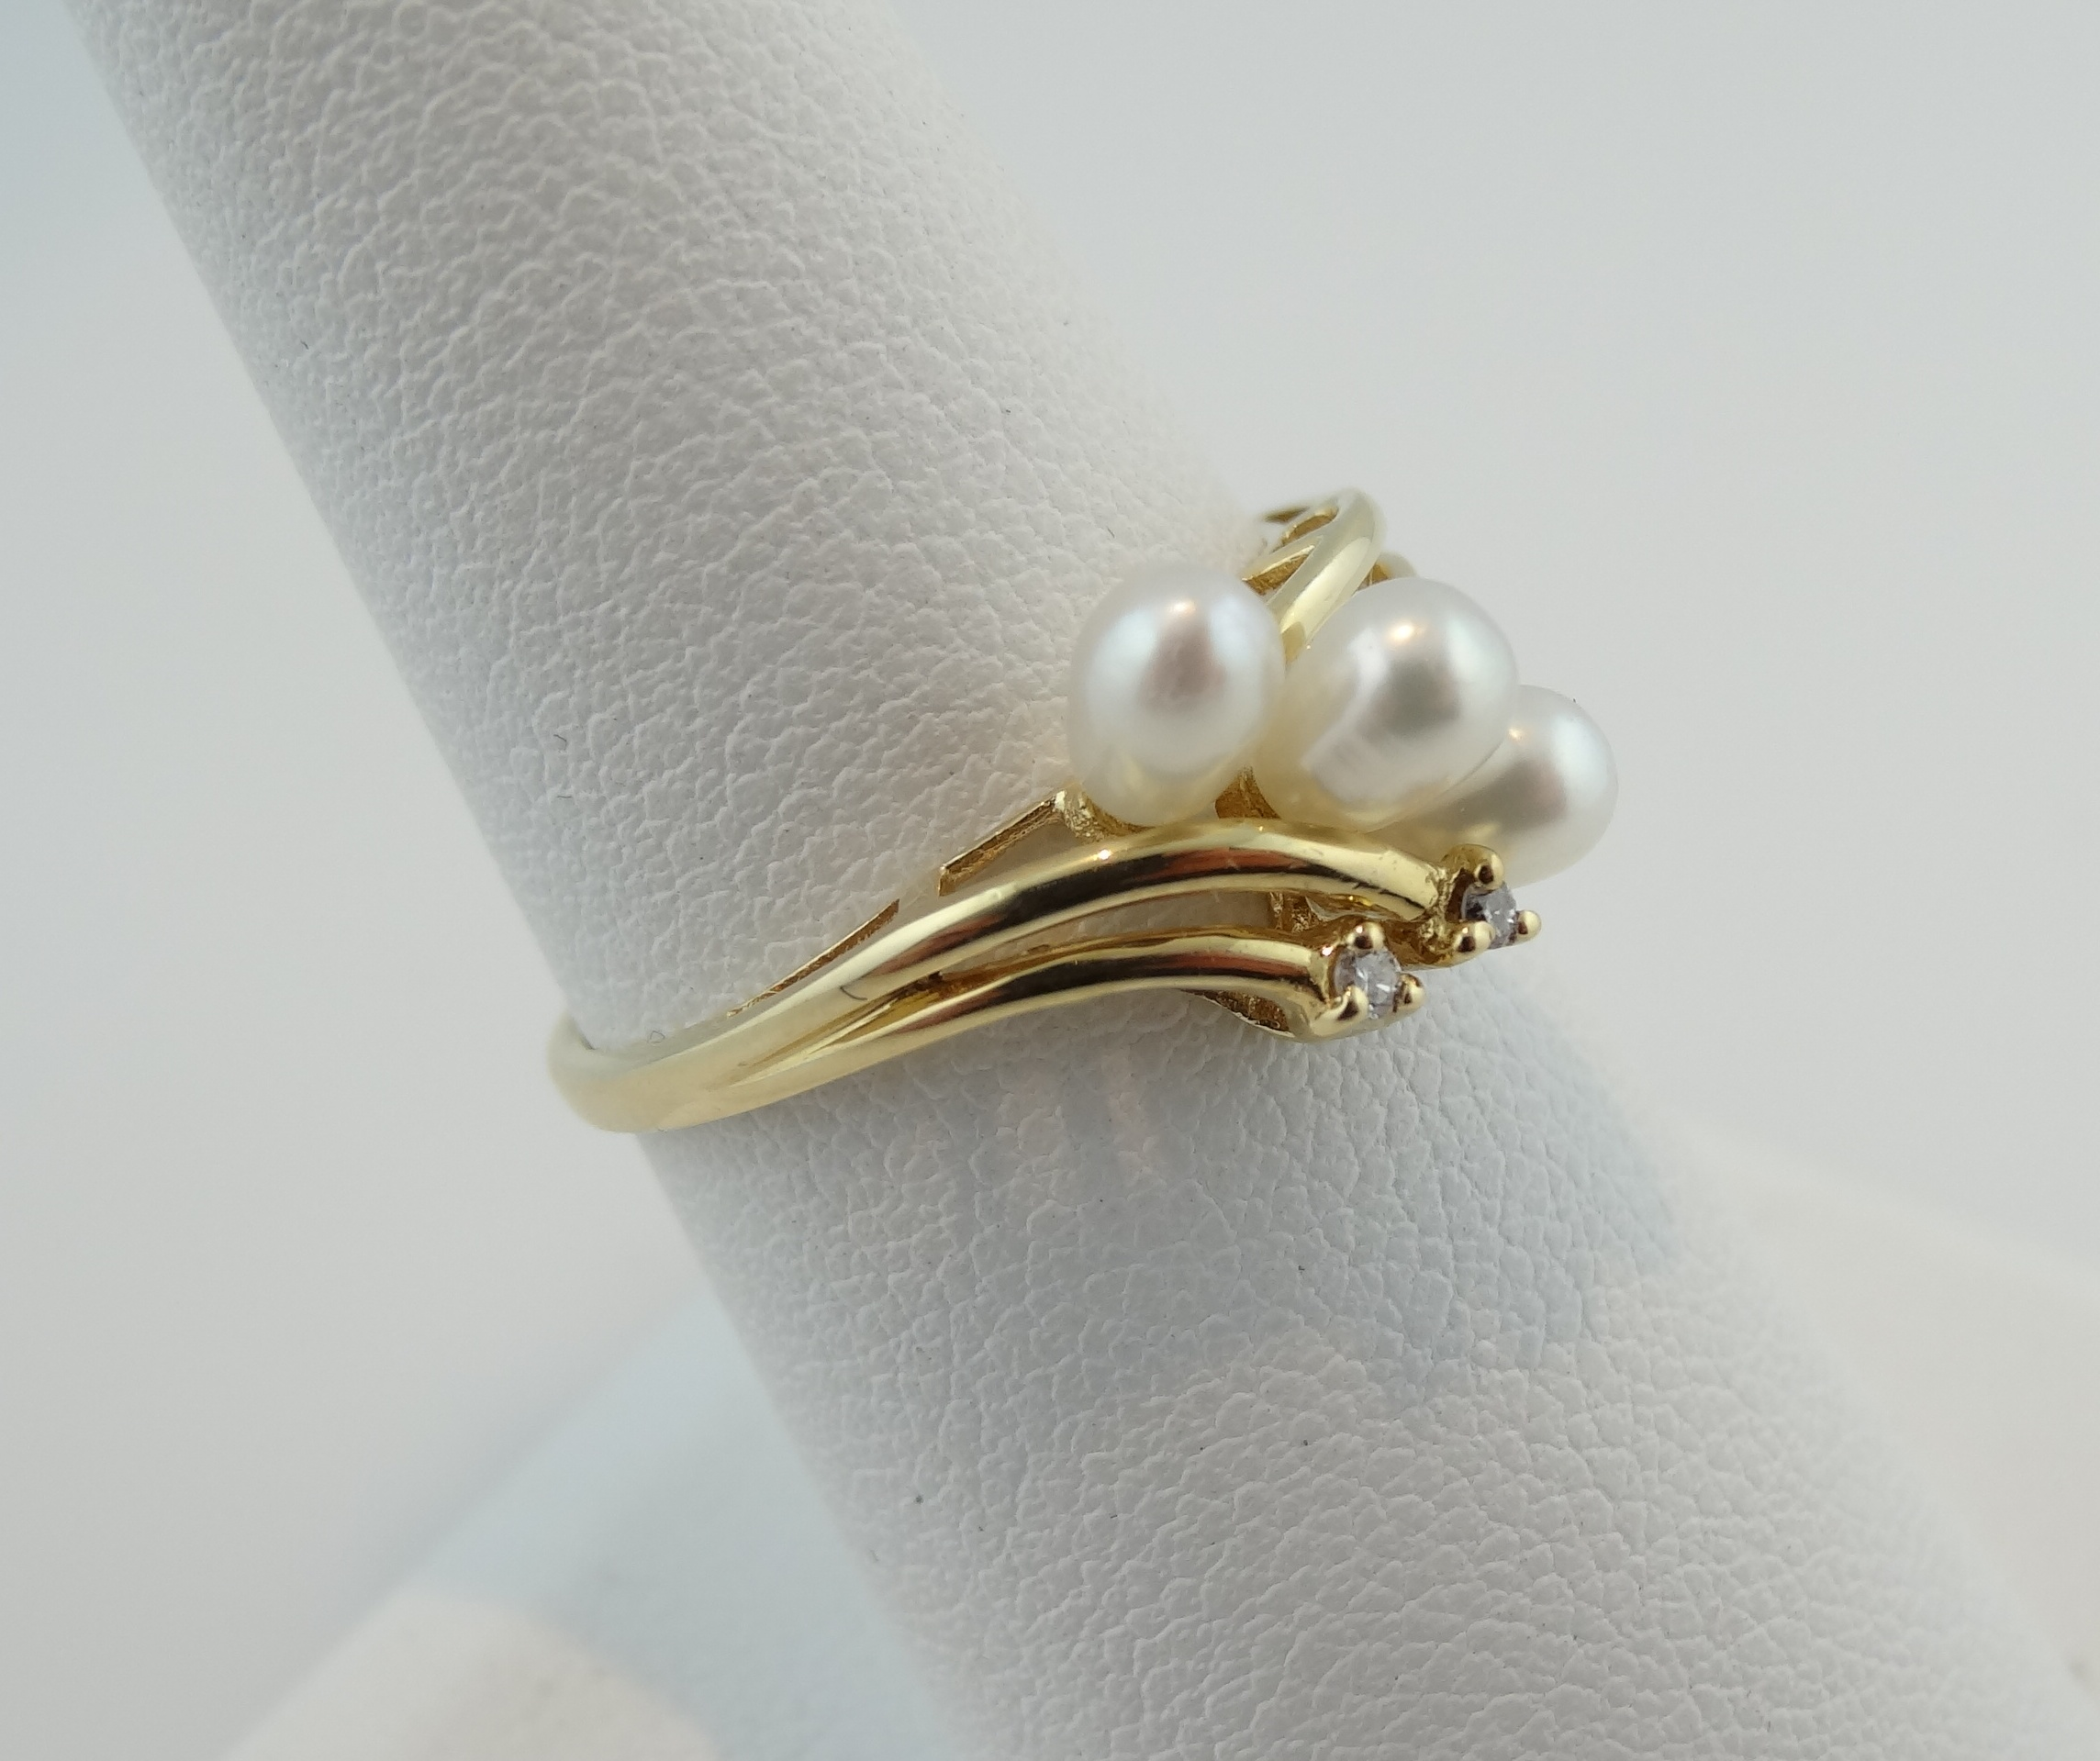 pearl engringpackage wedding button uk vintage ideas engagement rings fresh